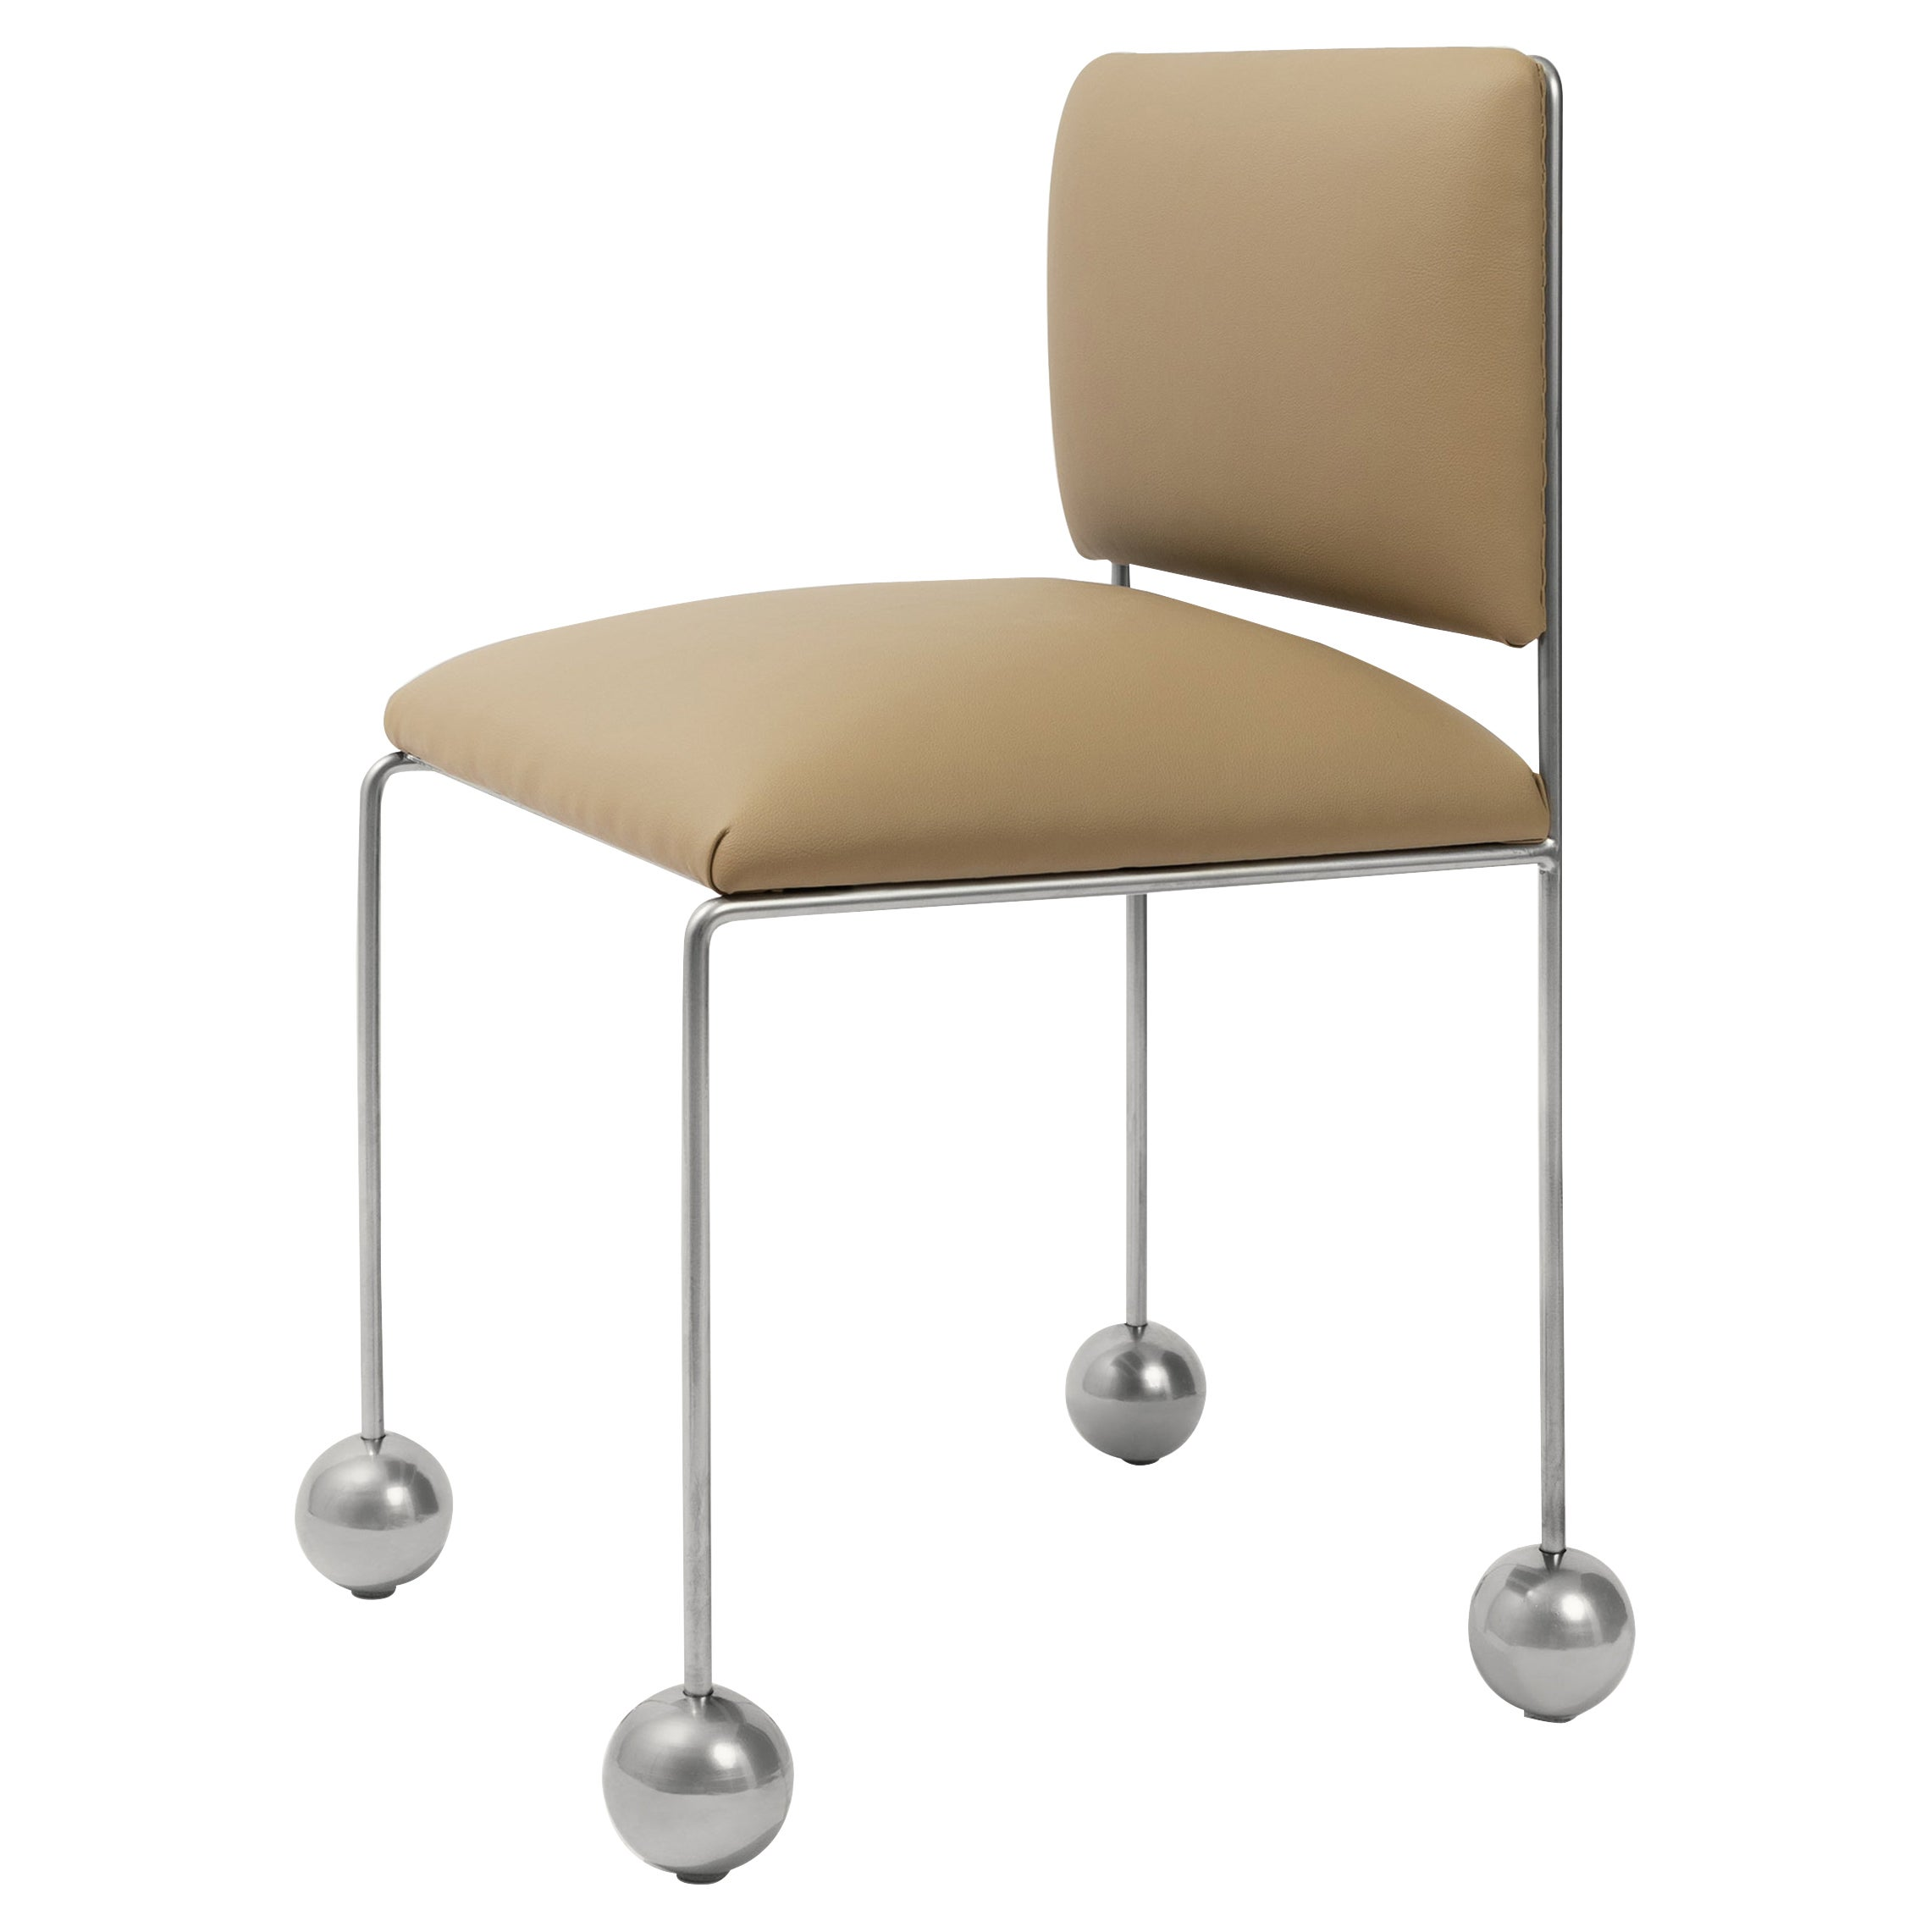 Ball Foot Chair by Panorammma